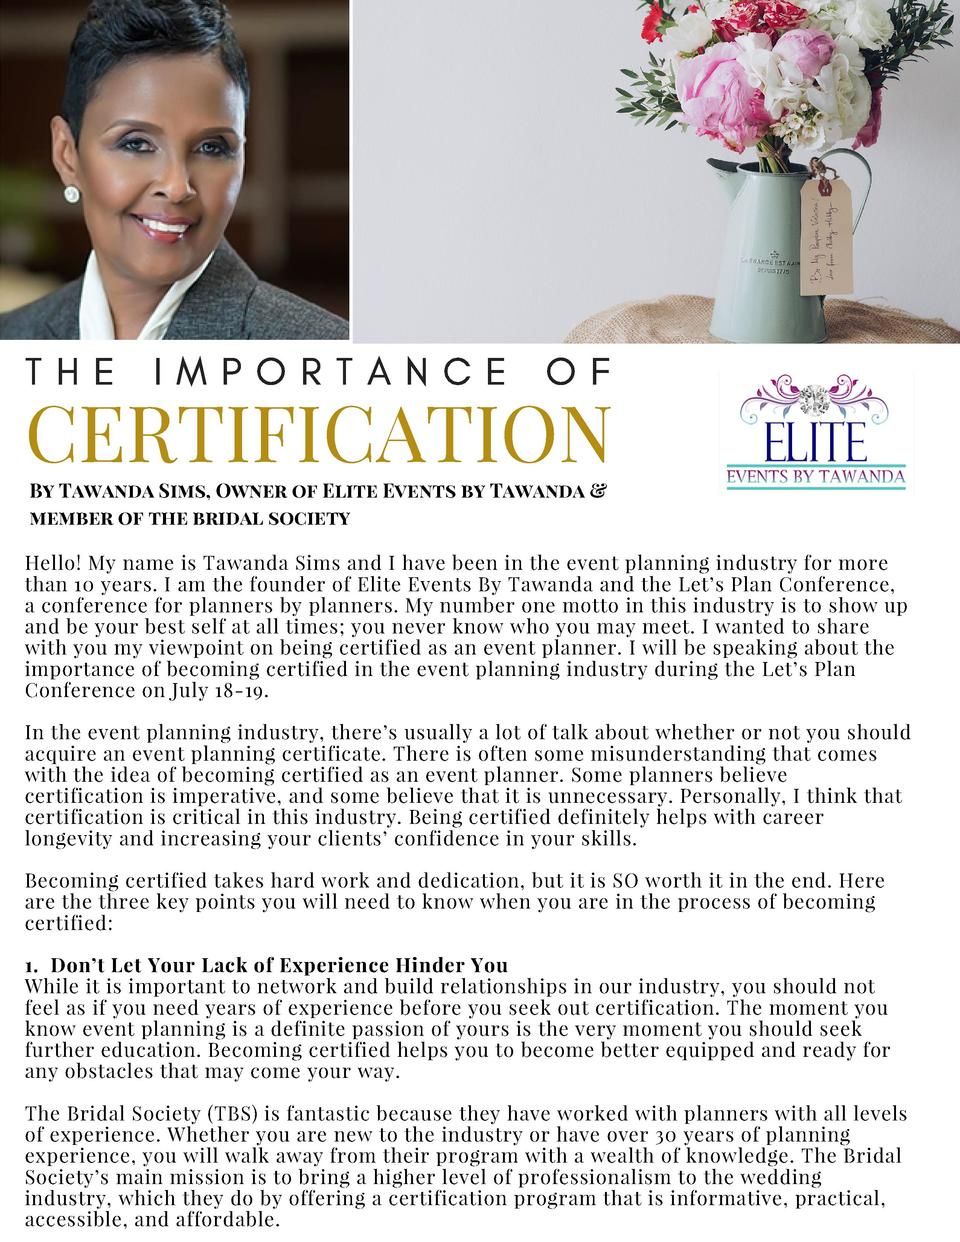 T H E  I M P O R T A N C E  O F  CERTIFICATION By Tawanda Sims, Owner of Elite Events by Tawanda   member of the bridal so...